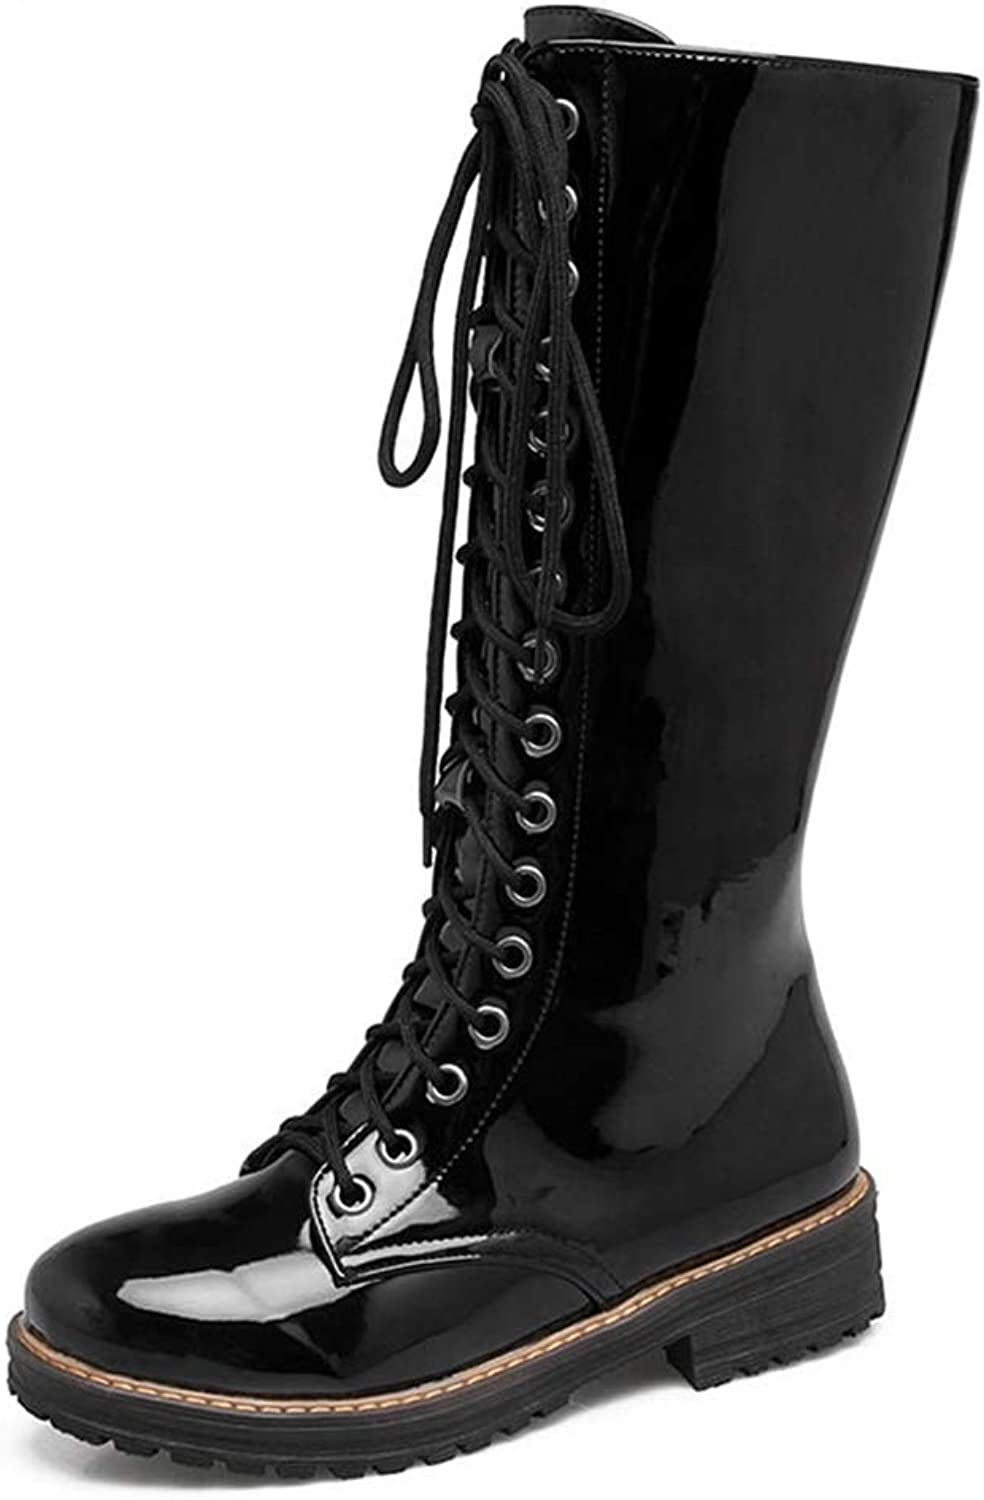 T-JULY Women shoes Plus Size 34-43 Zip Up shoes Woman Cool Mid Calf Boots Woman Add Fur Warm Winter Boots